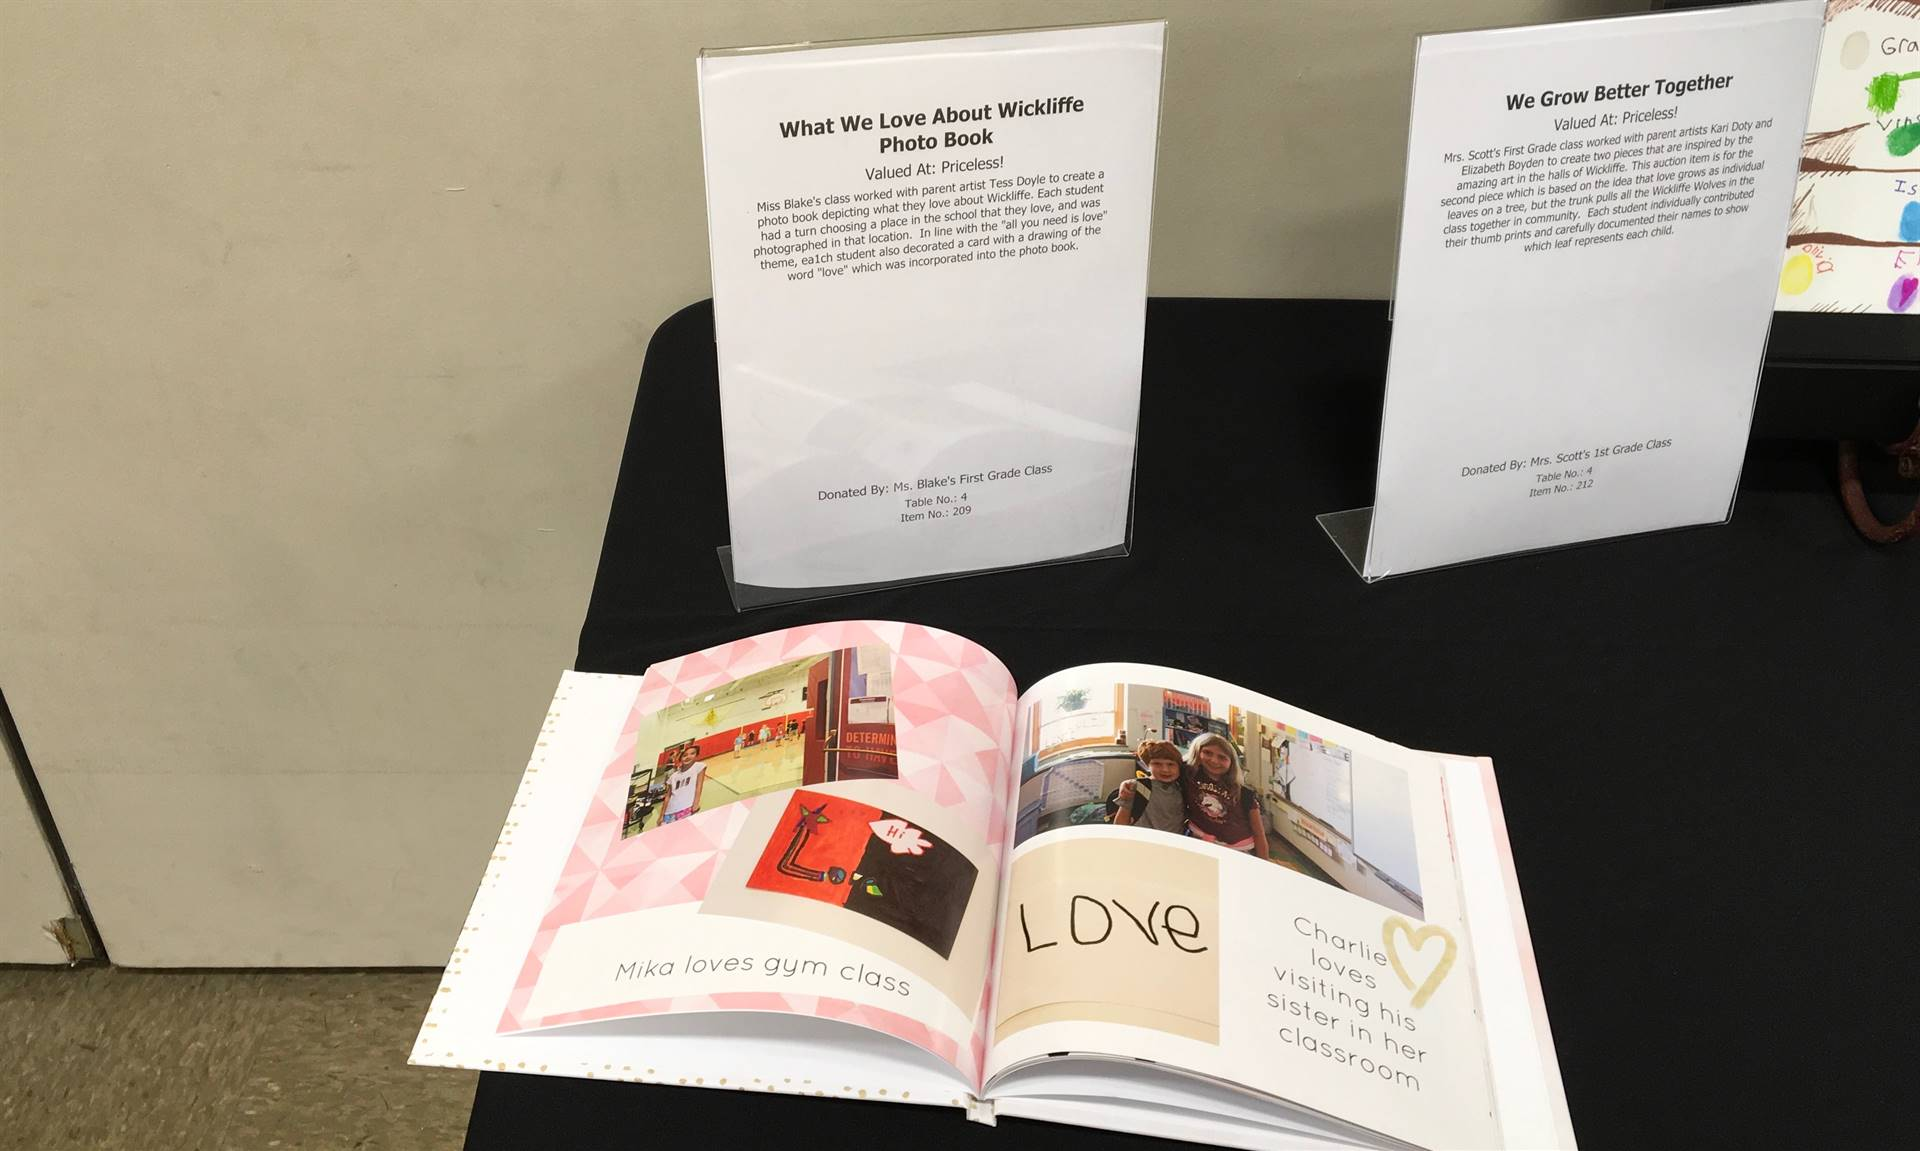 Informal Affair Art Project: What We Love About Wickliffe Photo Book